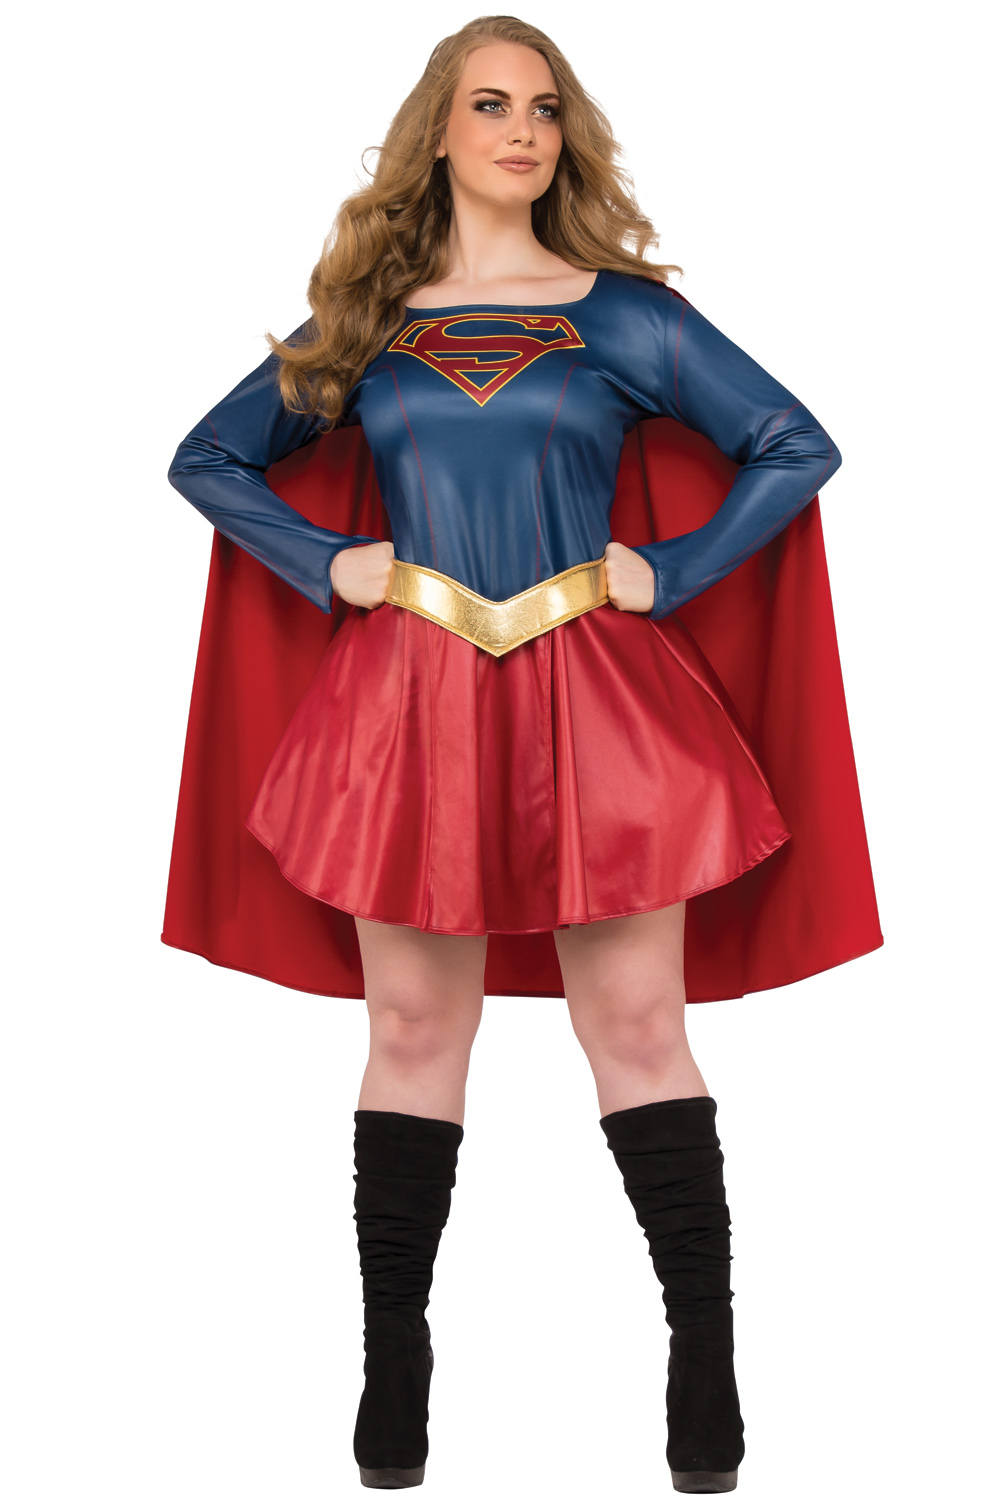 Plus size costumes purecostumes tv show supergirl plus size costume solutioingenieria Image collections